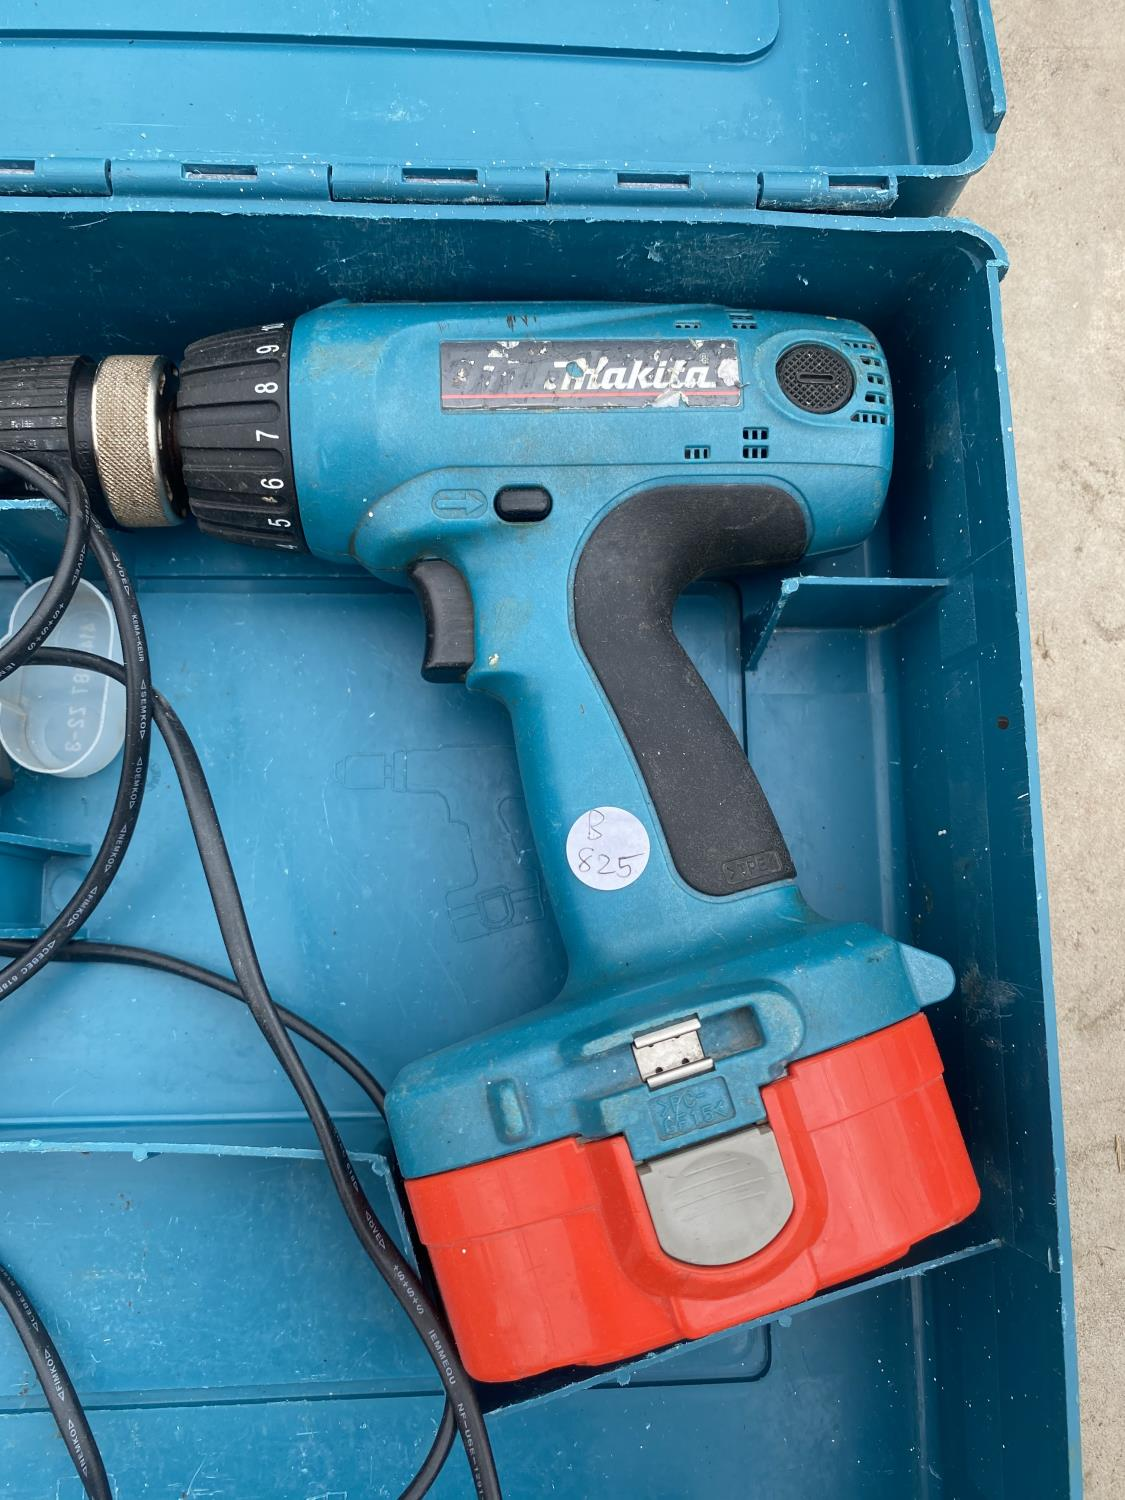 A MAKITA BATTERY DRILL WITH SPARE BATTERY AND CHARGER - Image 2 of 3